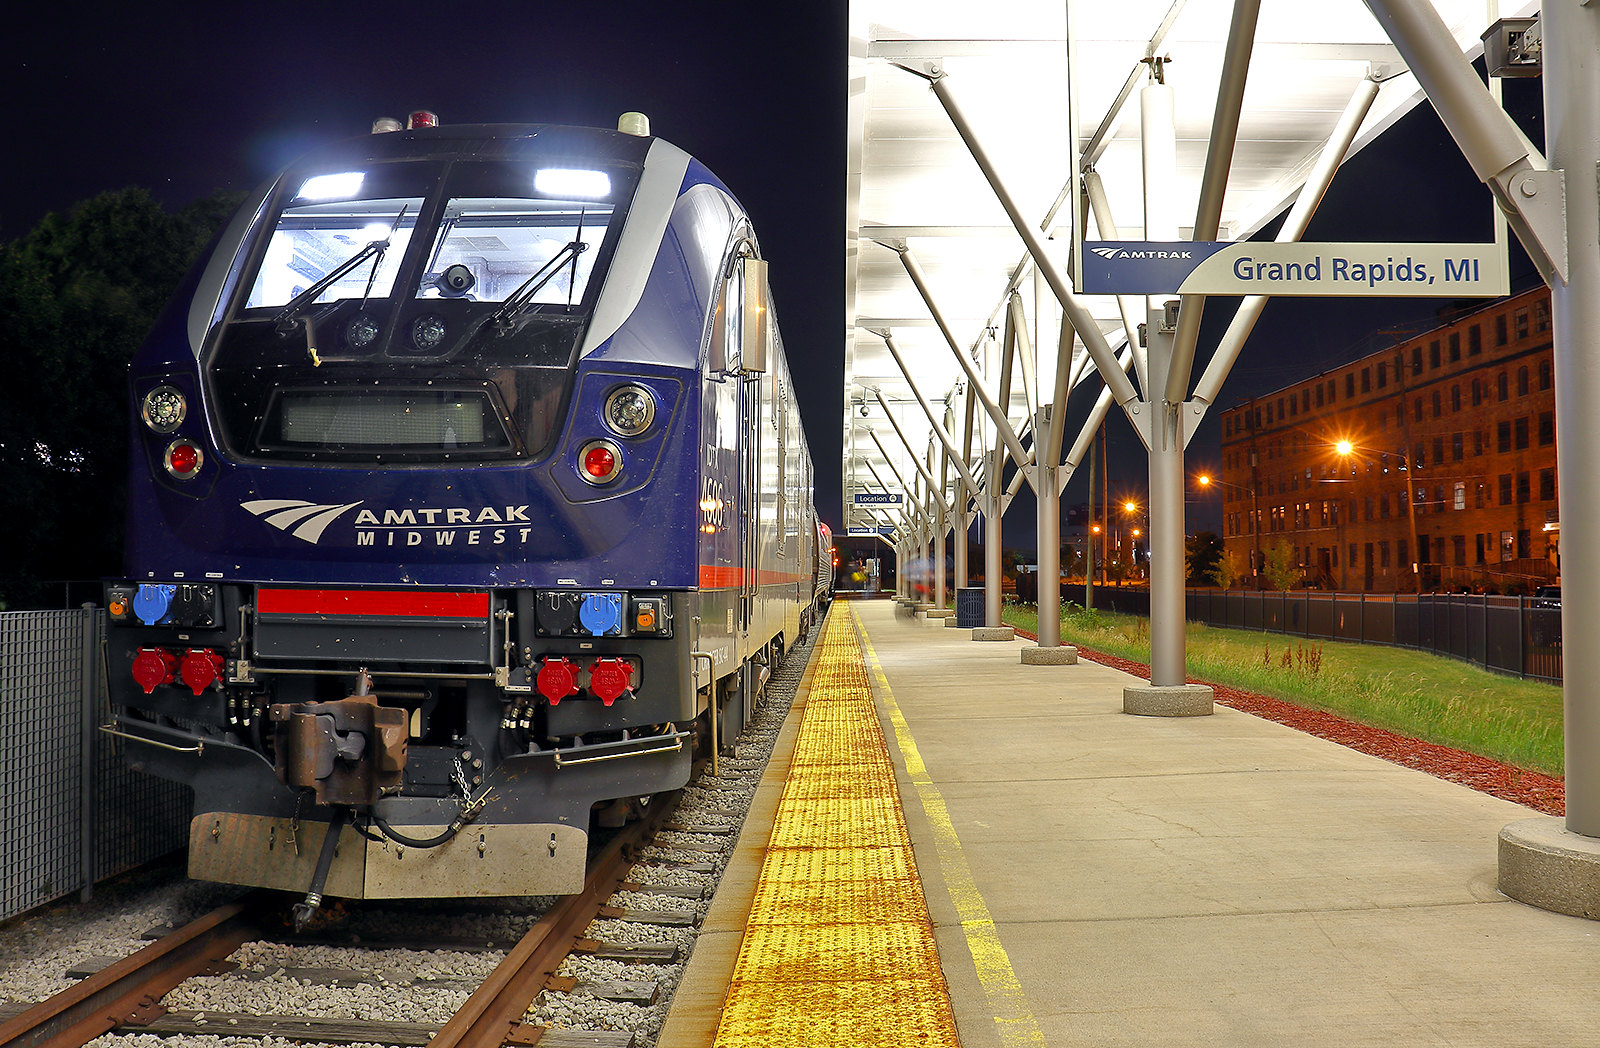 Will Congress hold Amtrak accountable for providing essential passenger rail service?